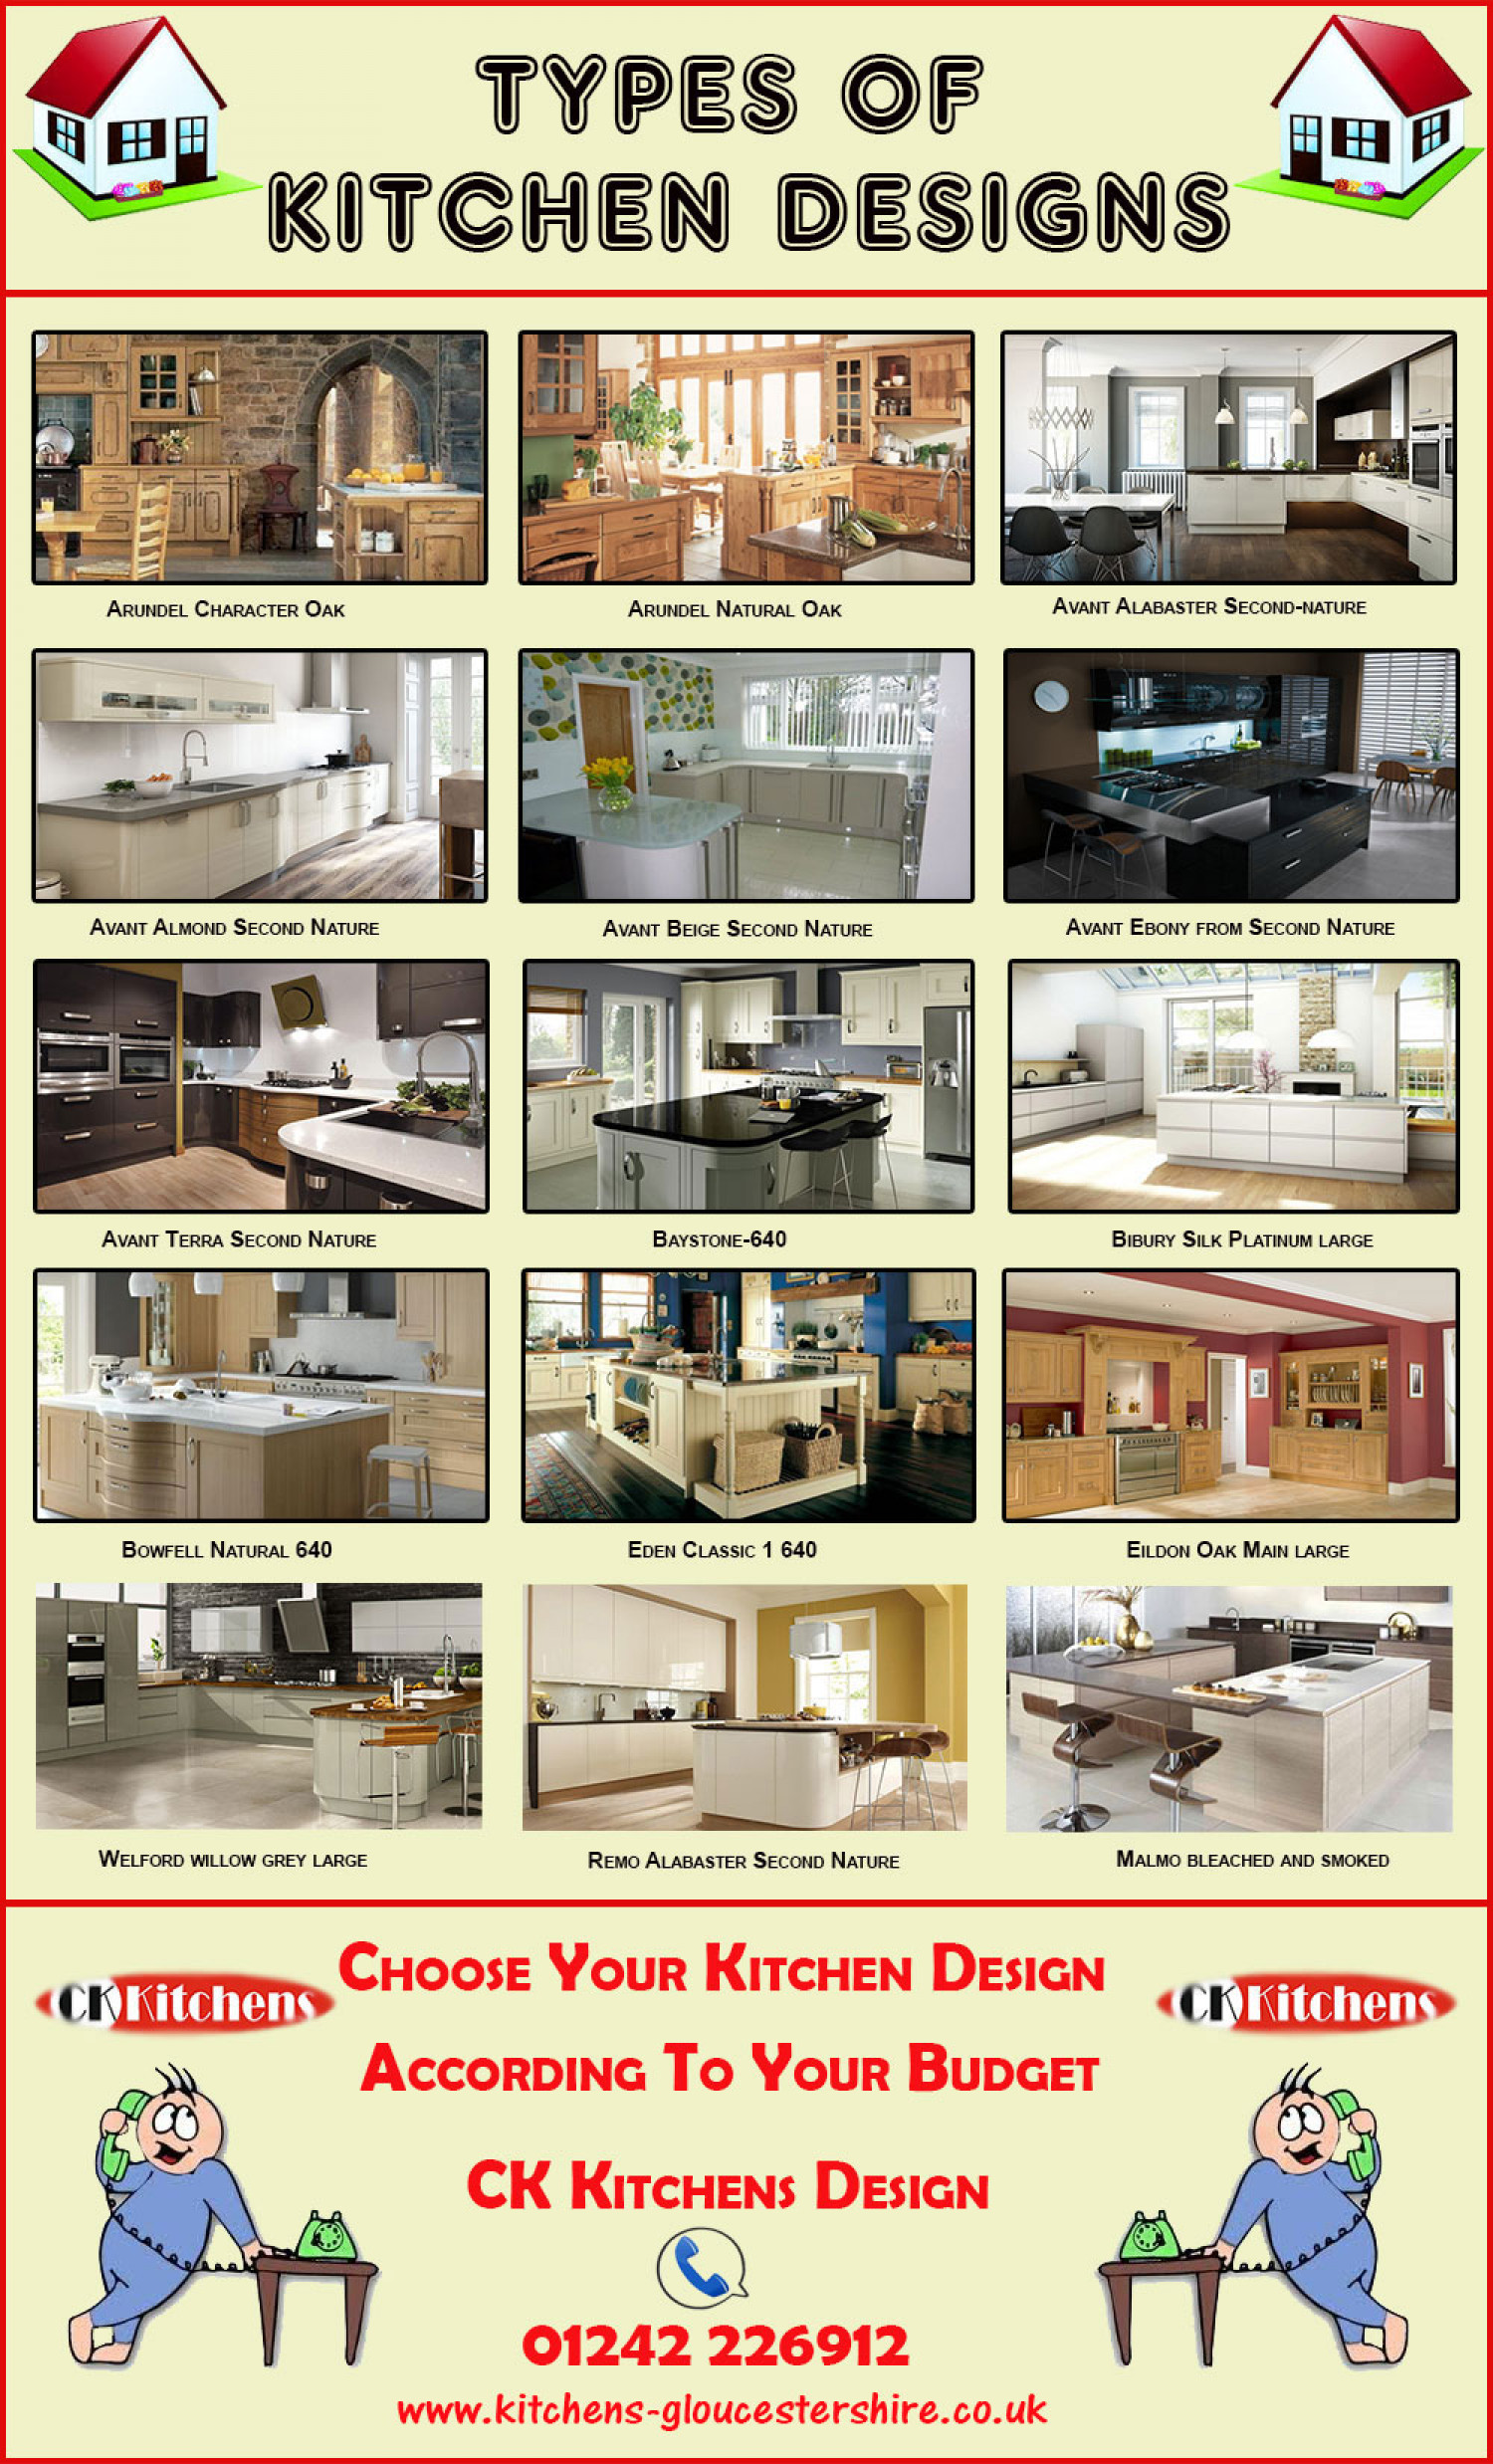 Types of Kitchen Design Infographic